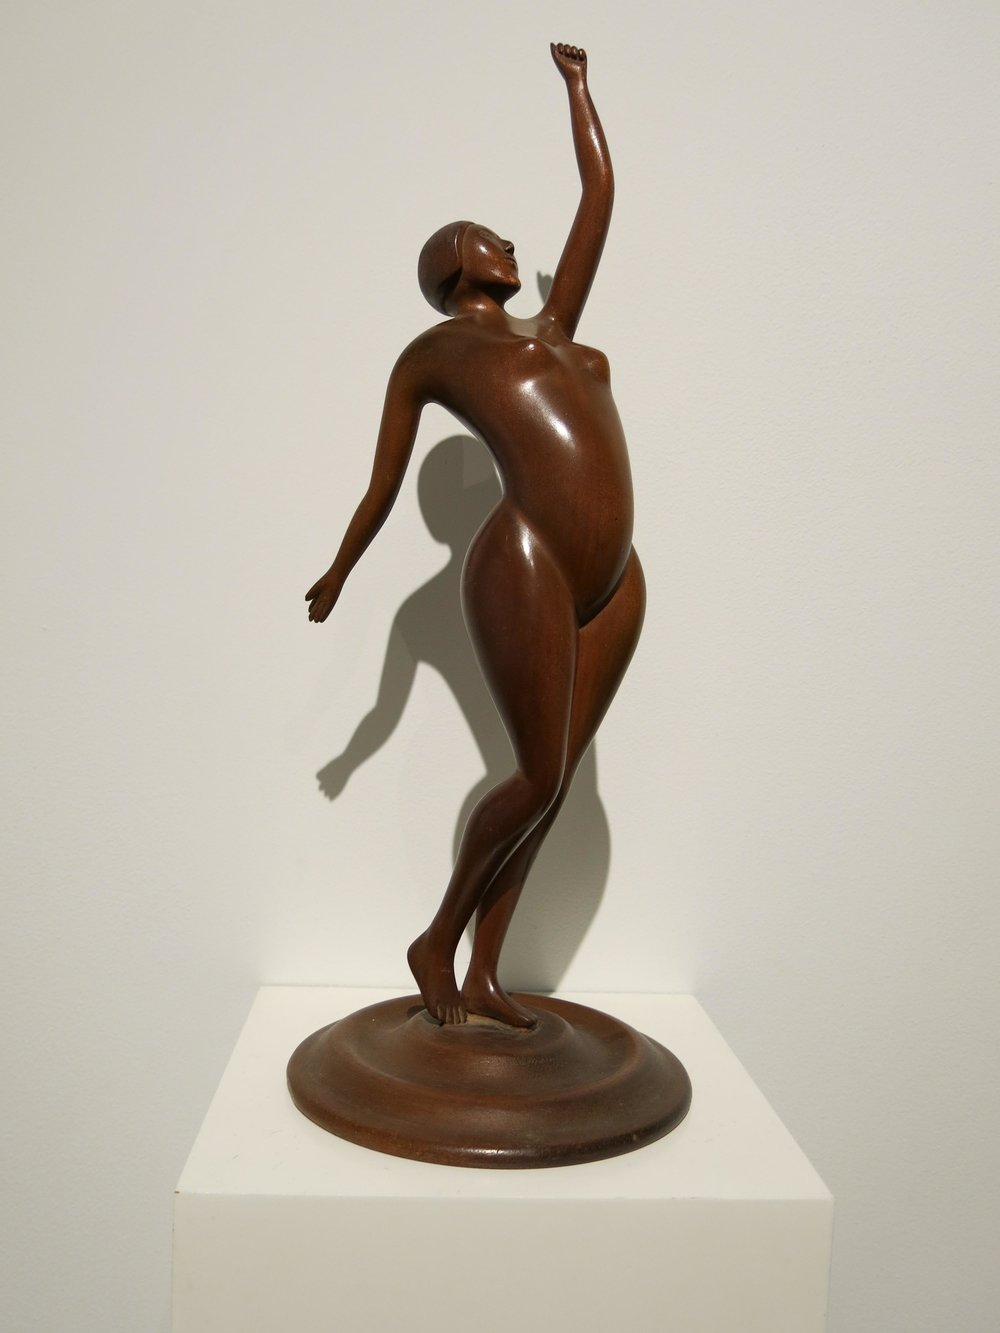 Anonymous, American,  Female Figure,  c. 1930, carved wood with original varnish, 14h x 5w x 5d in.